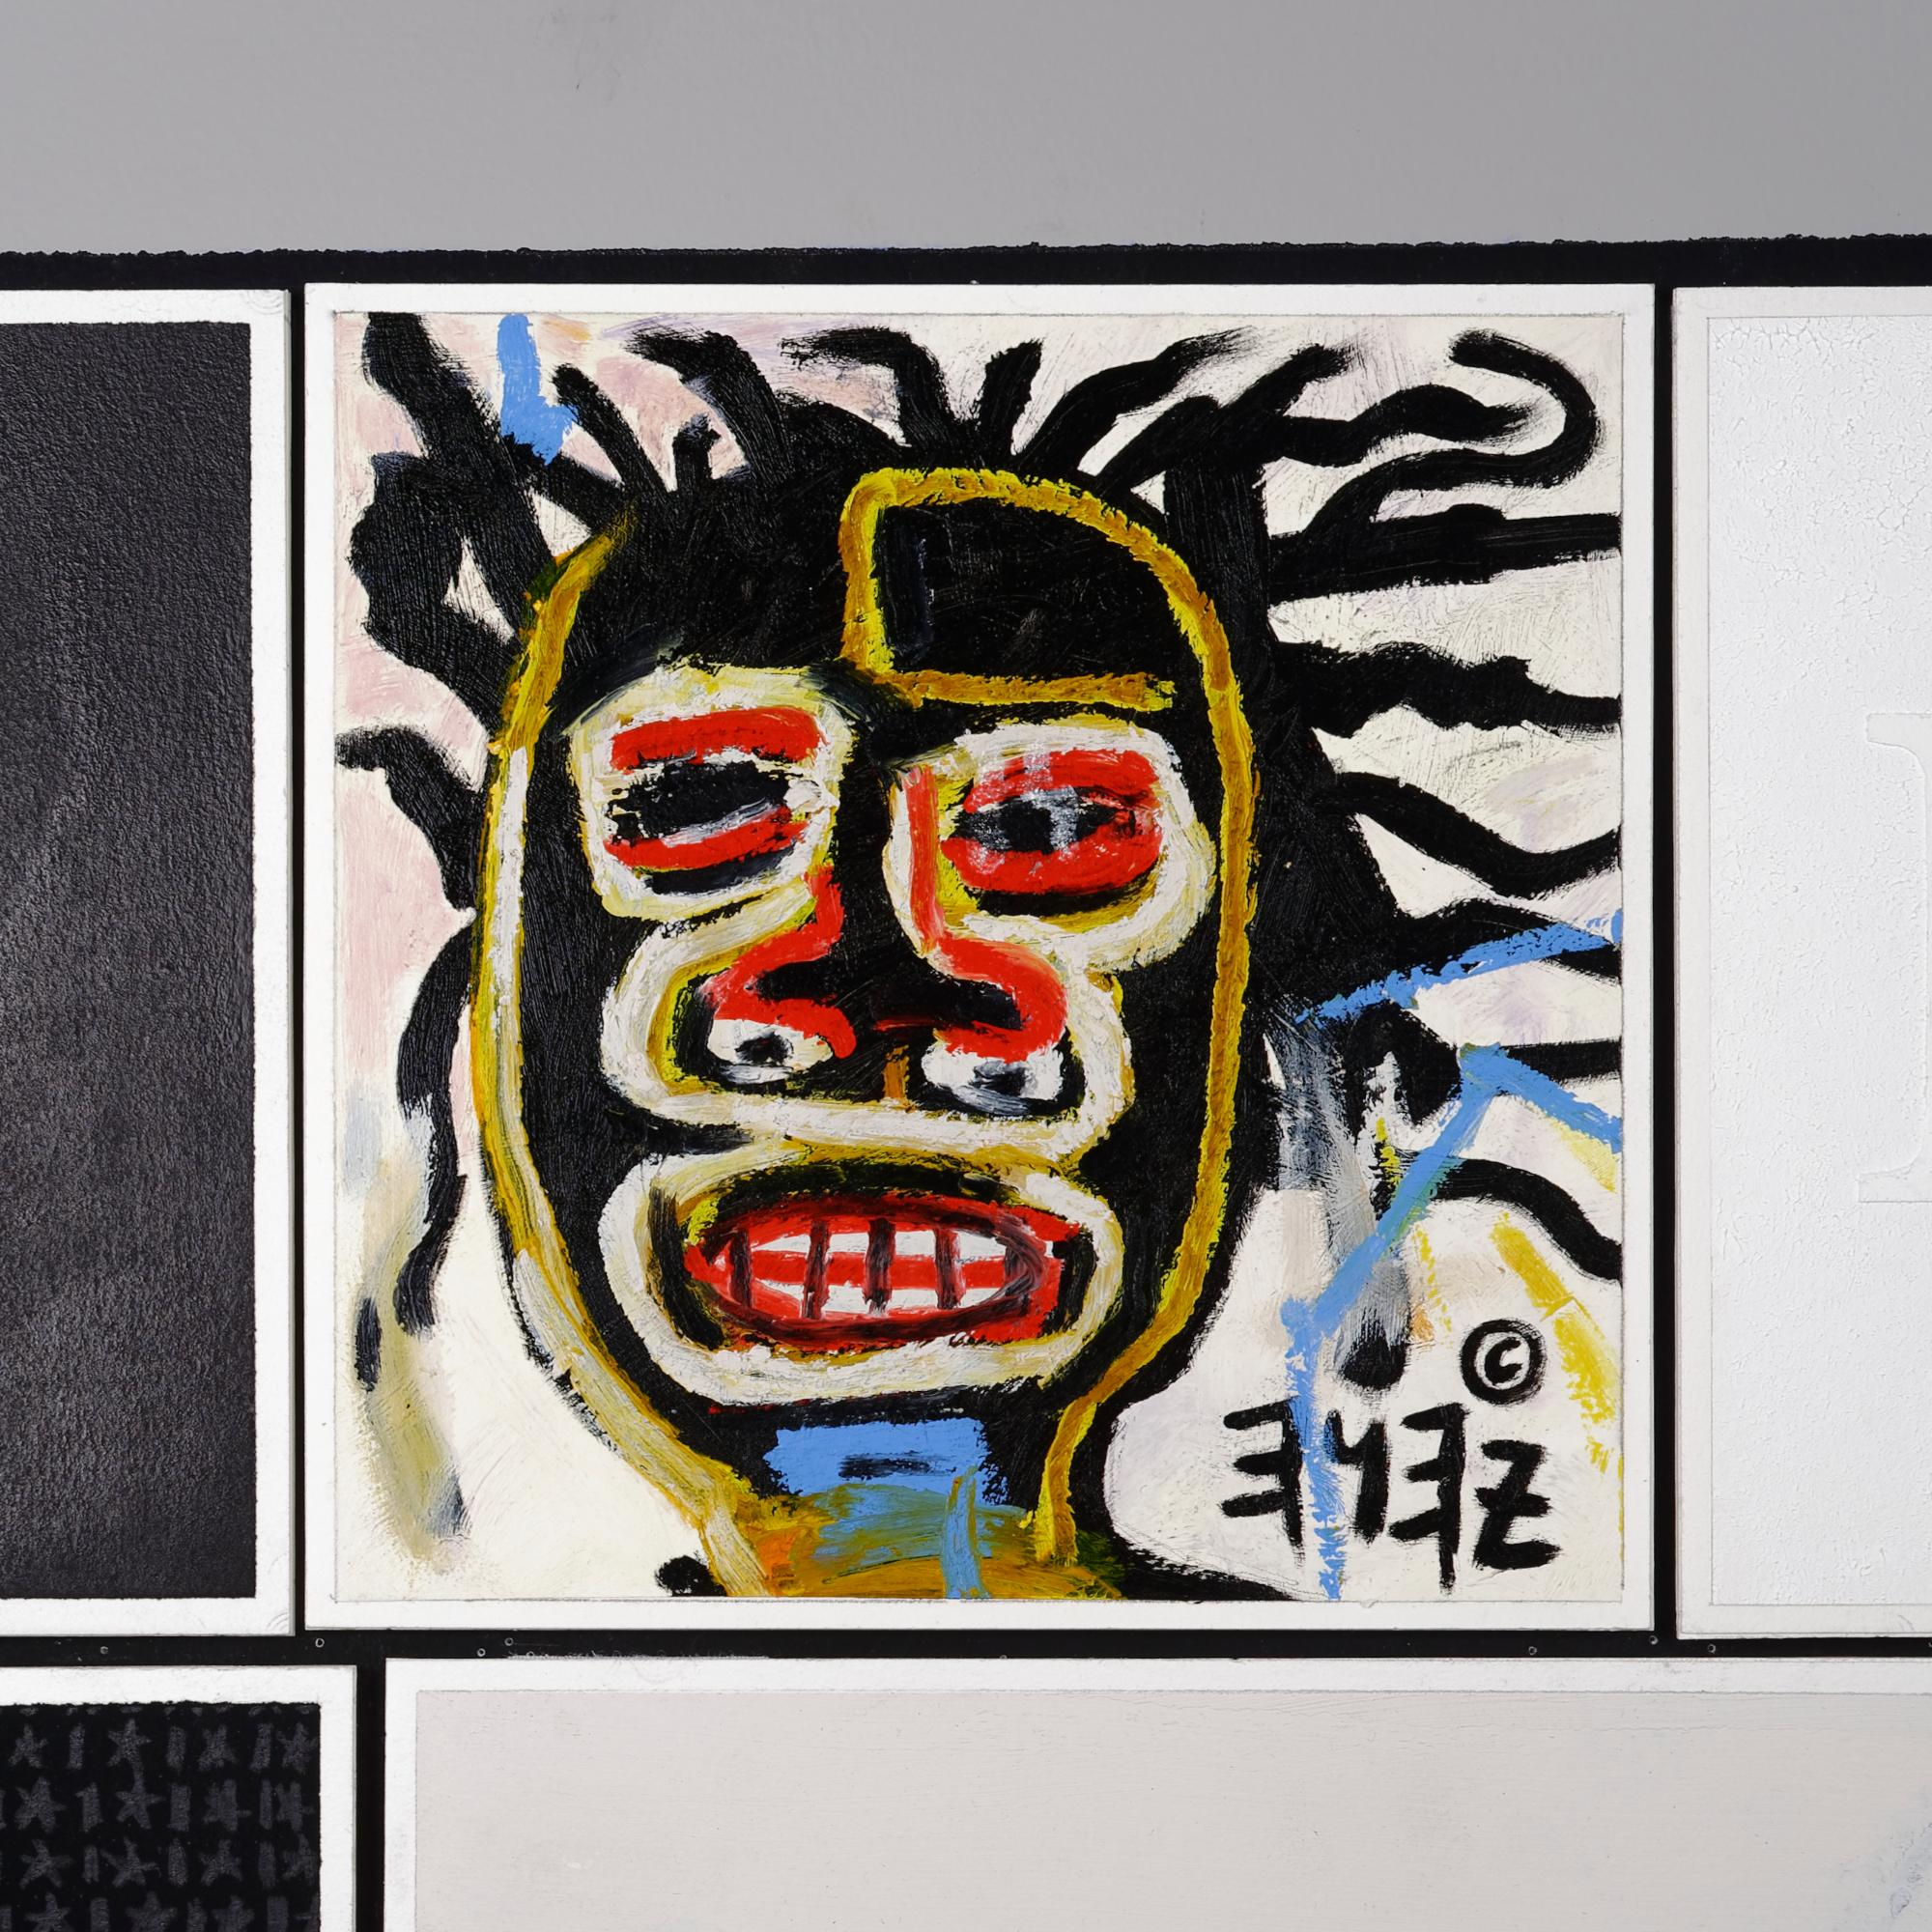 After Jean Michel Basquiat